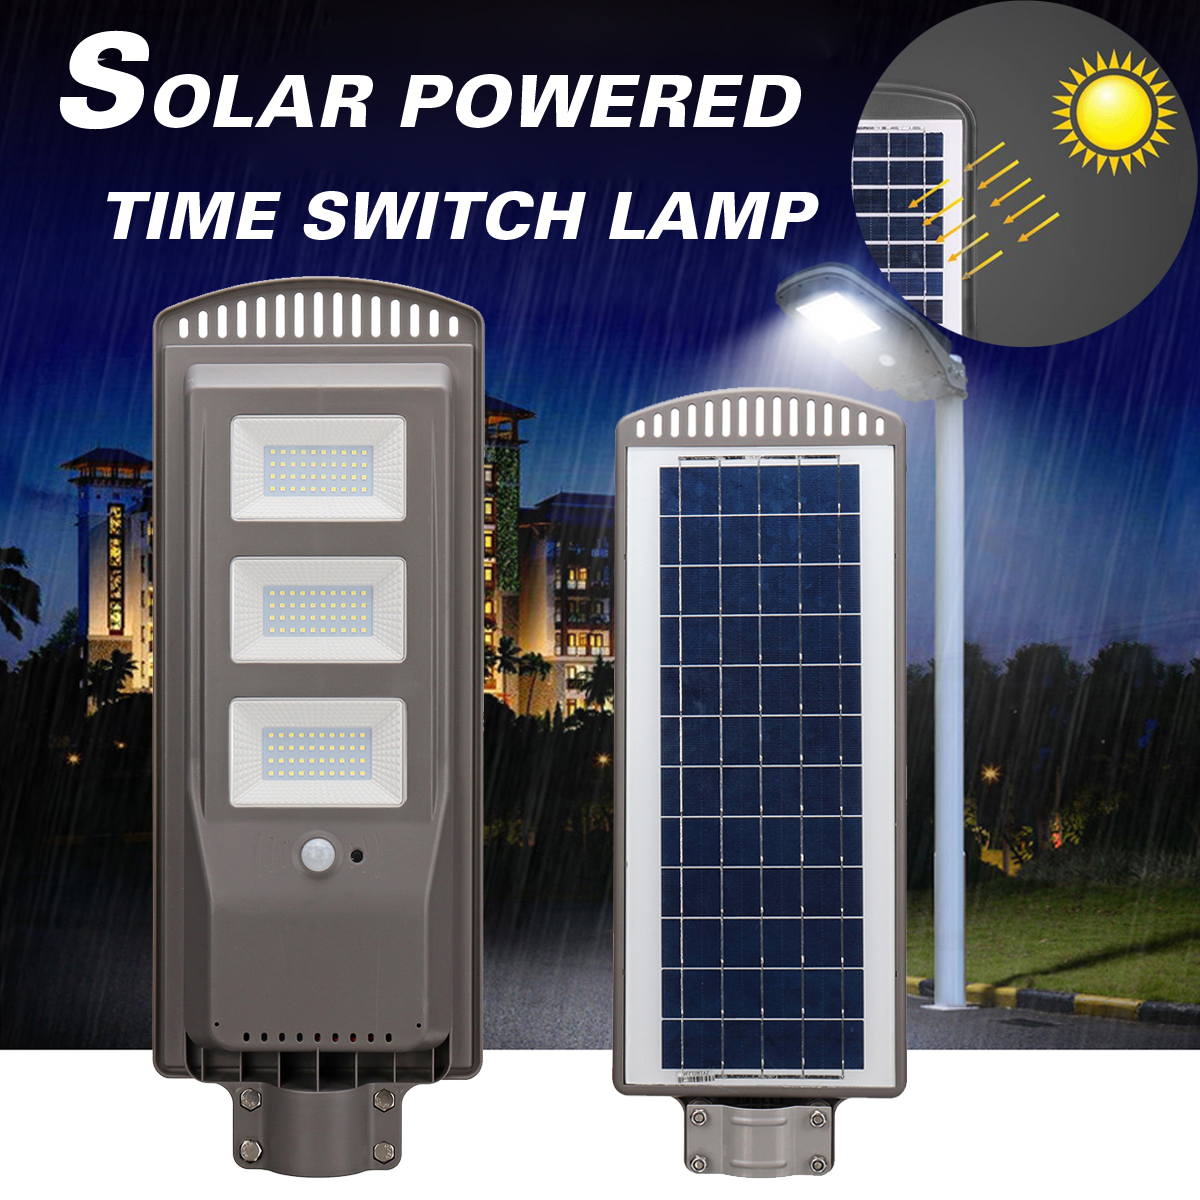 New 60W Solar Powered Panel LED Solar Street Light All-in-1 Time Switch Waterproof IP67 Wall Lighting Lamp for Outdoor Garden high lumen 60w all in one solar street light south africa for commerical lighting residential lighting